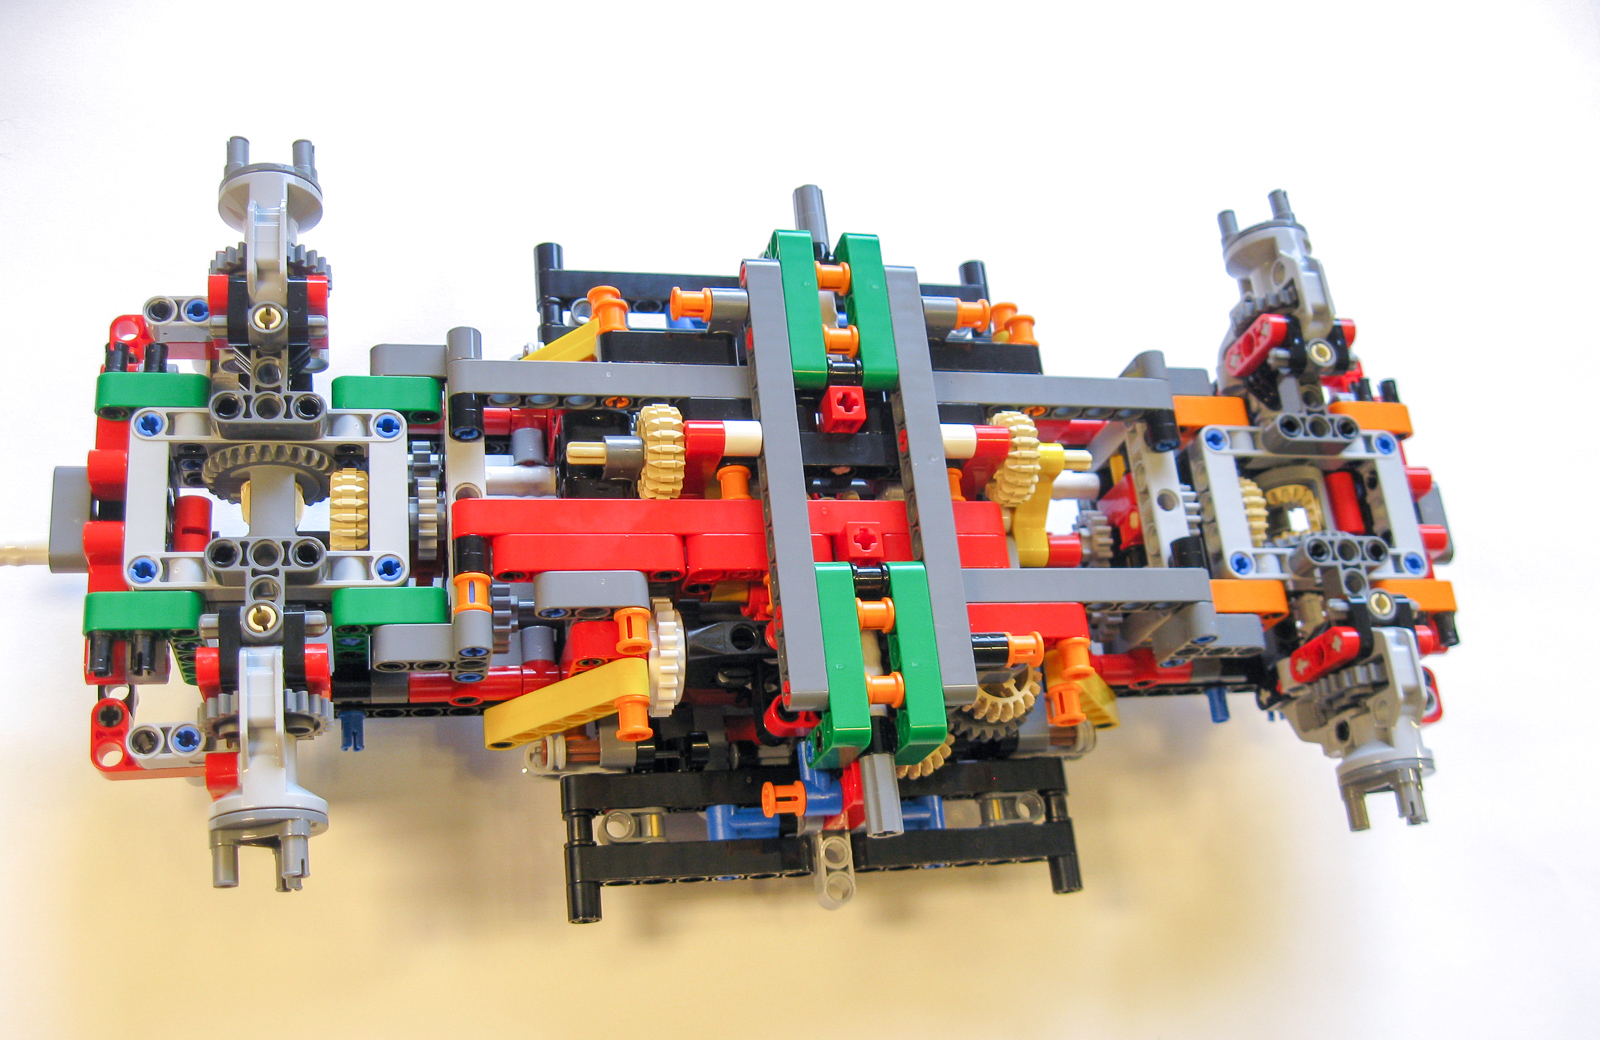 ʀᴇᴠɪᴇᴡ: #42082 Rough Terrain Crane - BRICK ARCHITECT